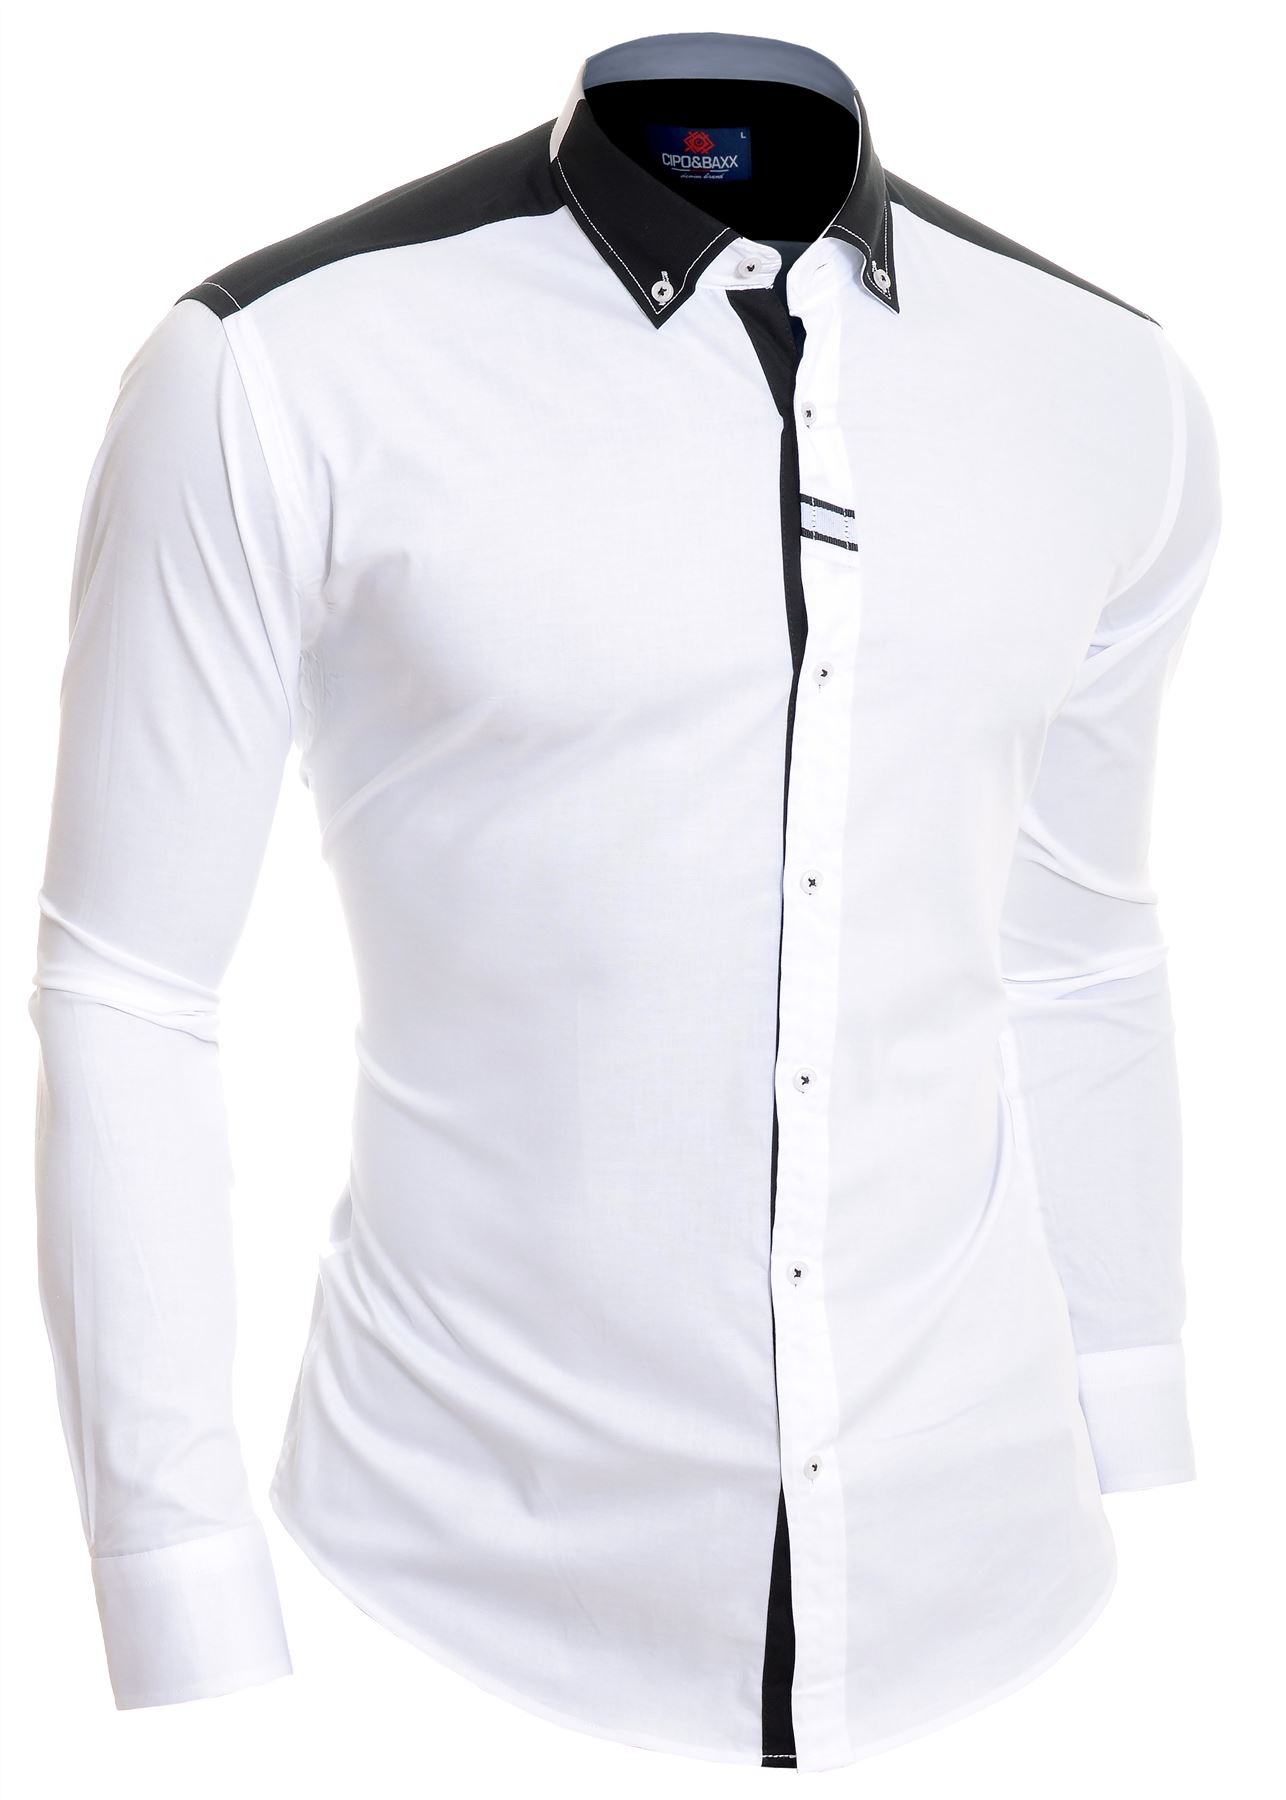 Cipo-amp-Baxx-Designer-Men-039-s-Elegant-Shirt-White-Black-Cotton-Slim-Contrast-Cuffs thumbnail 9